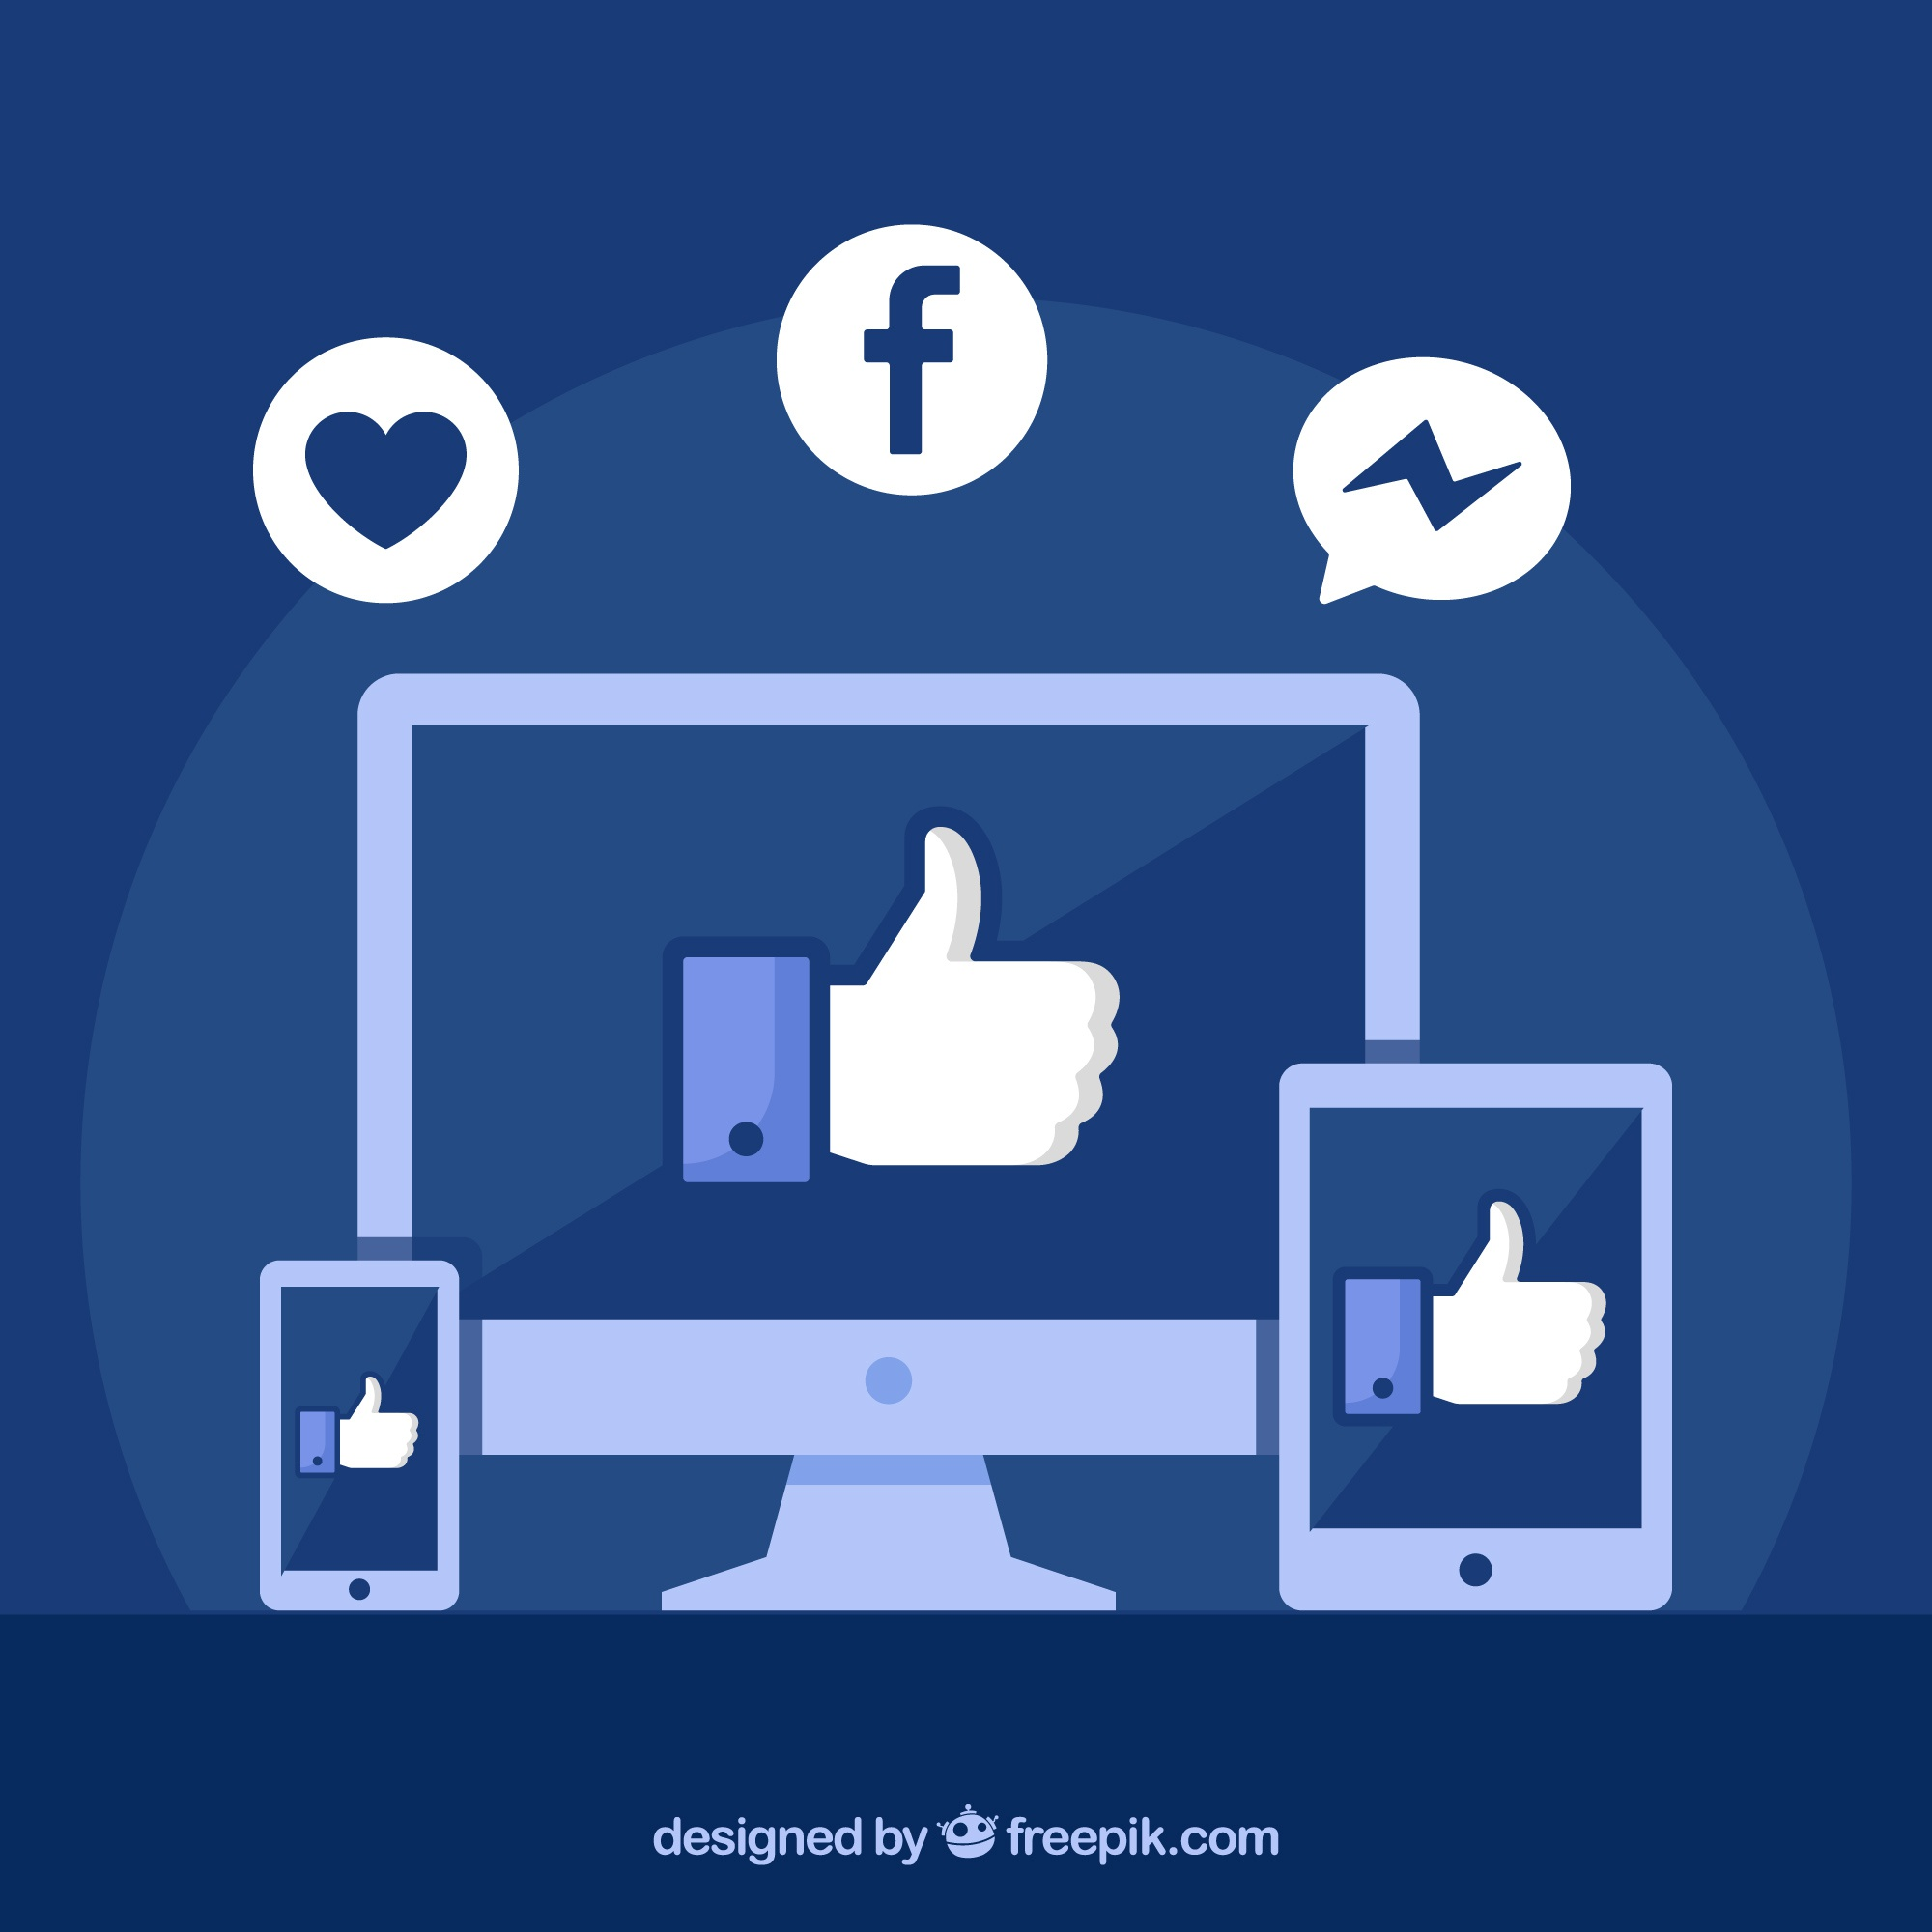 Facebook likes background